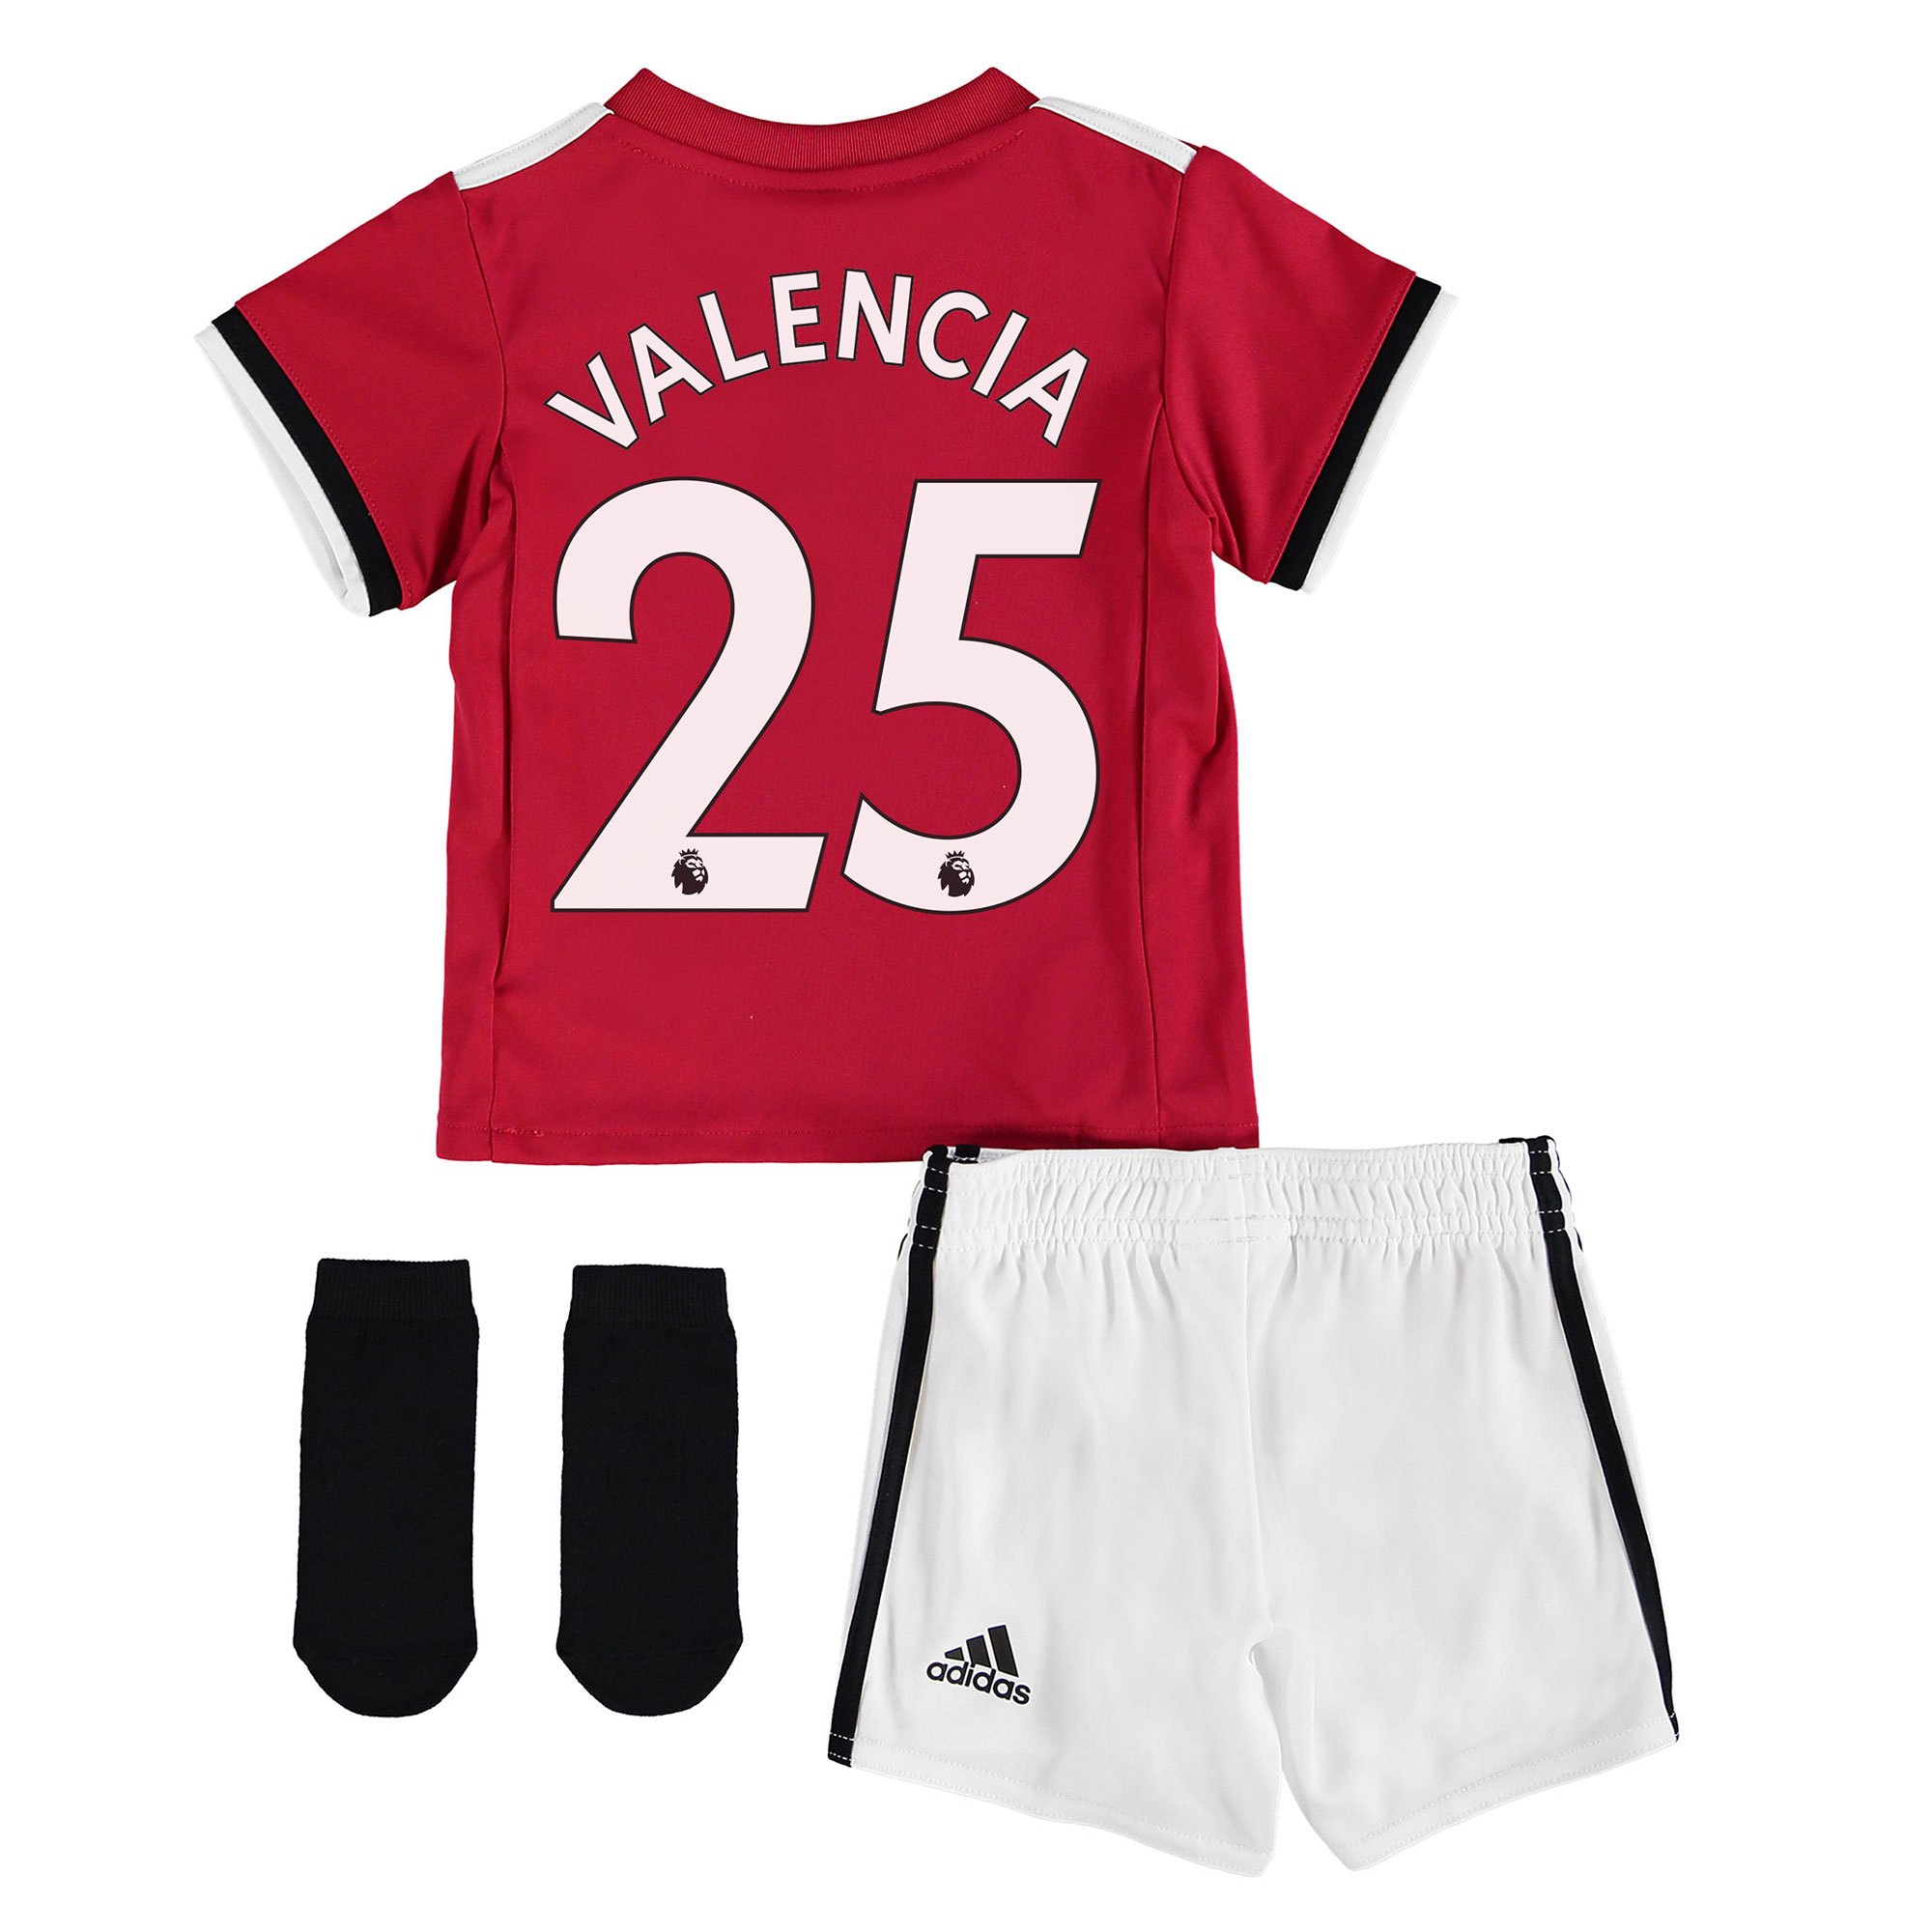 Manchester United Home Baby Kit 2017-18 with Valencia 25 printing